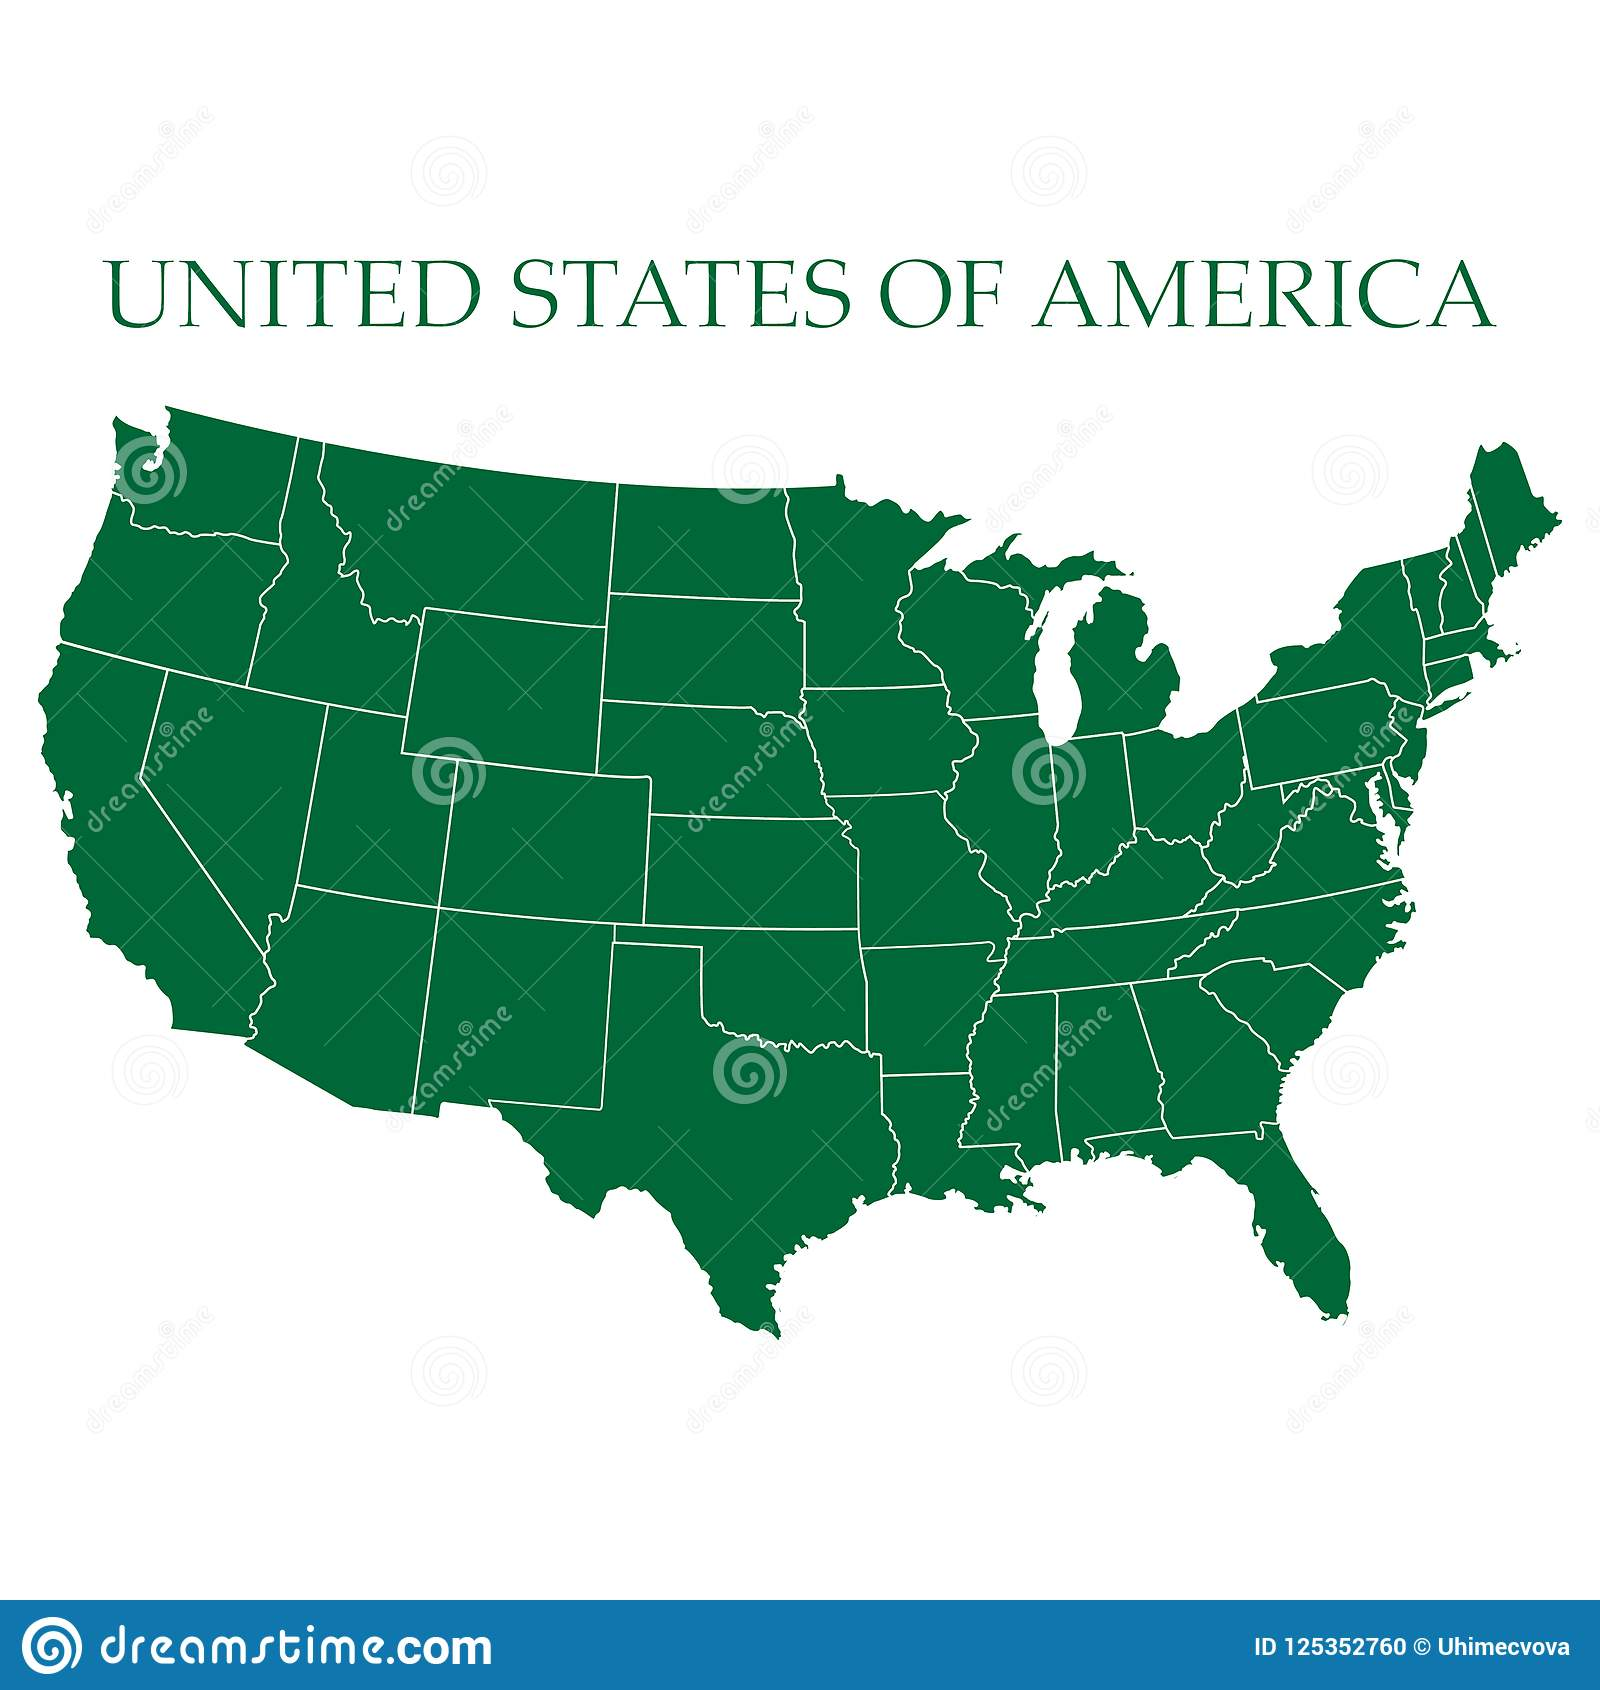 USA Map Vector, US MAP VECTOR, UNITED STATES OF AMERICA MAP VECTOR ...